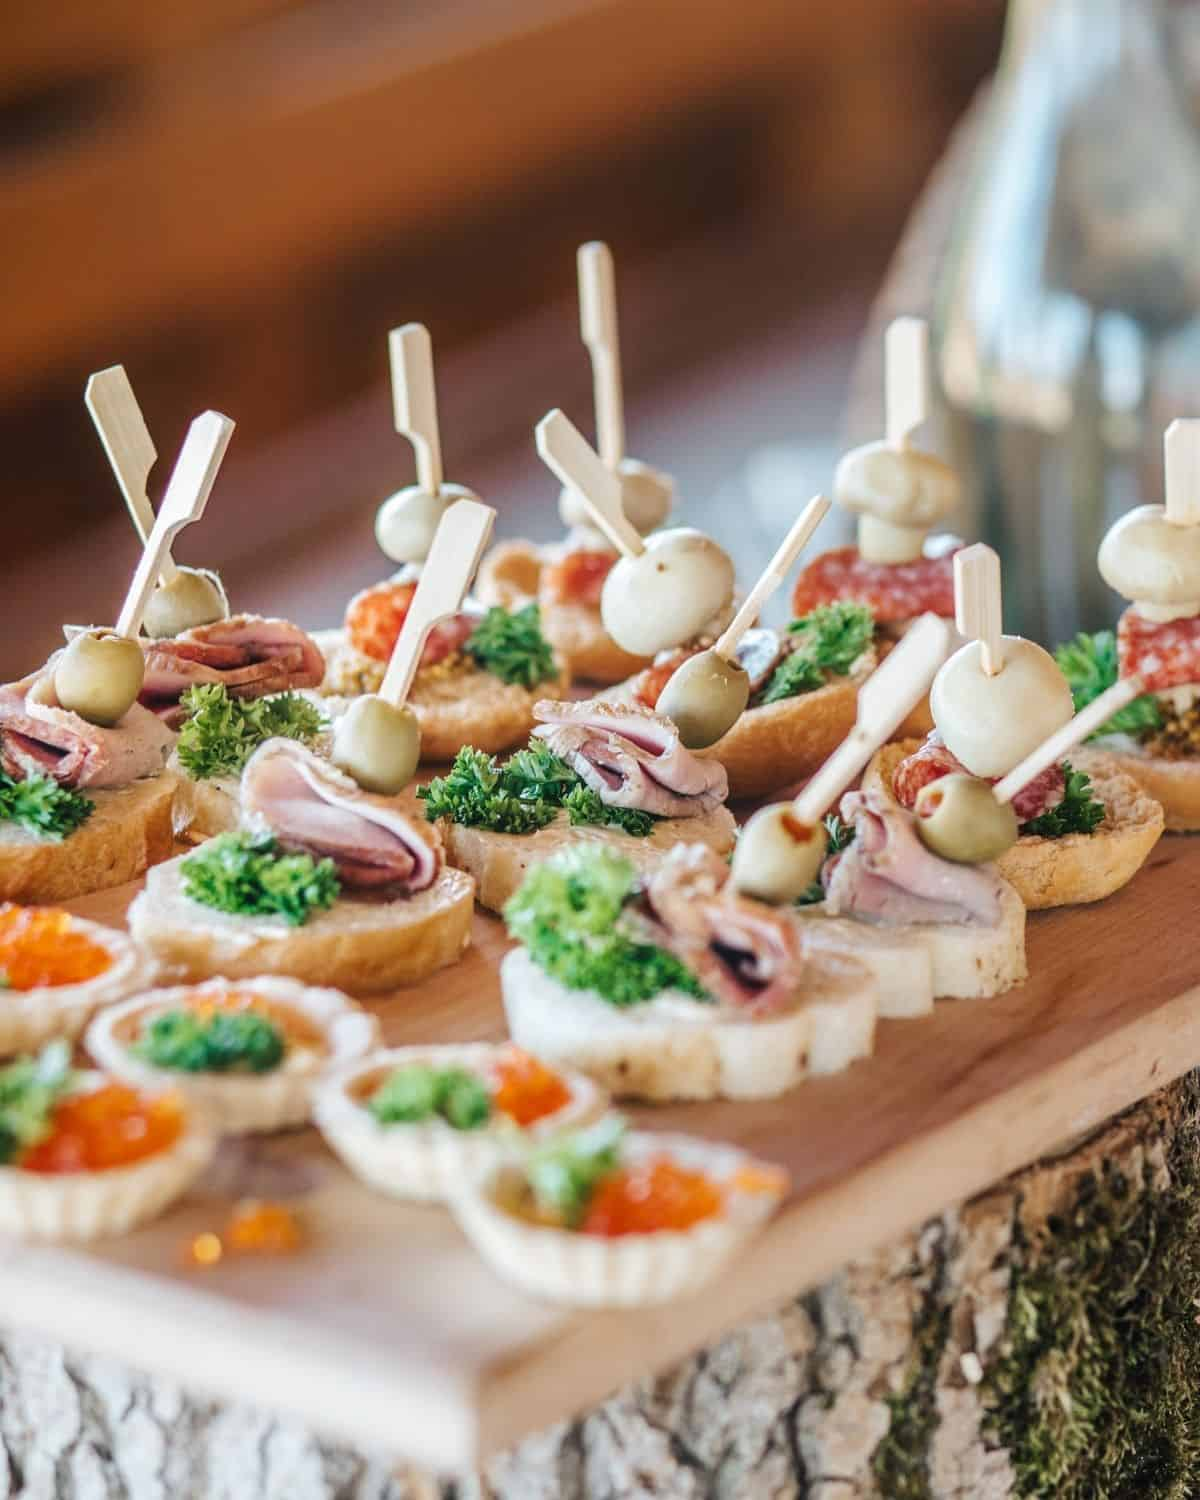 appetizers at a cocktail party on cutting board.